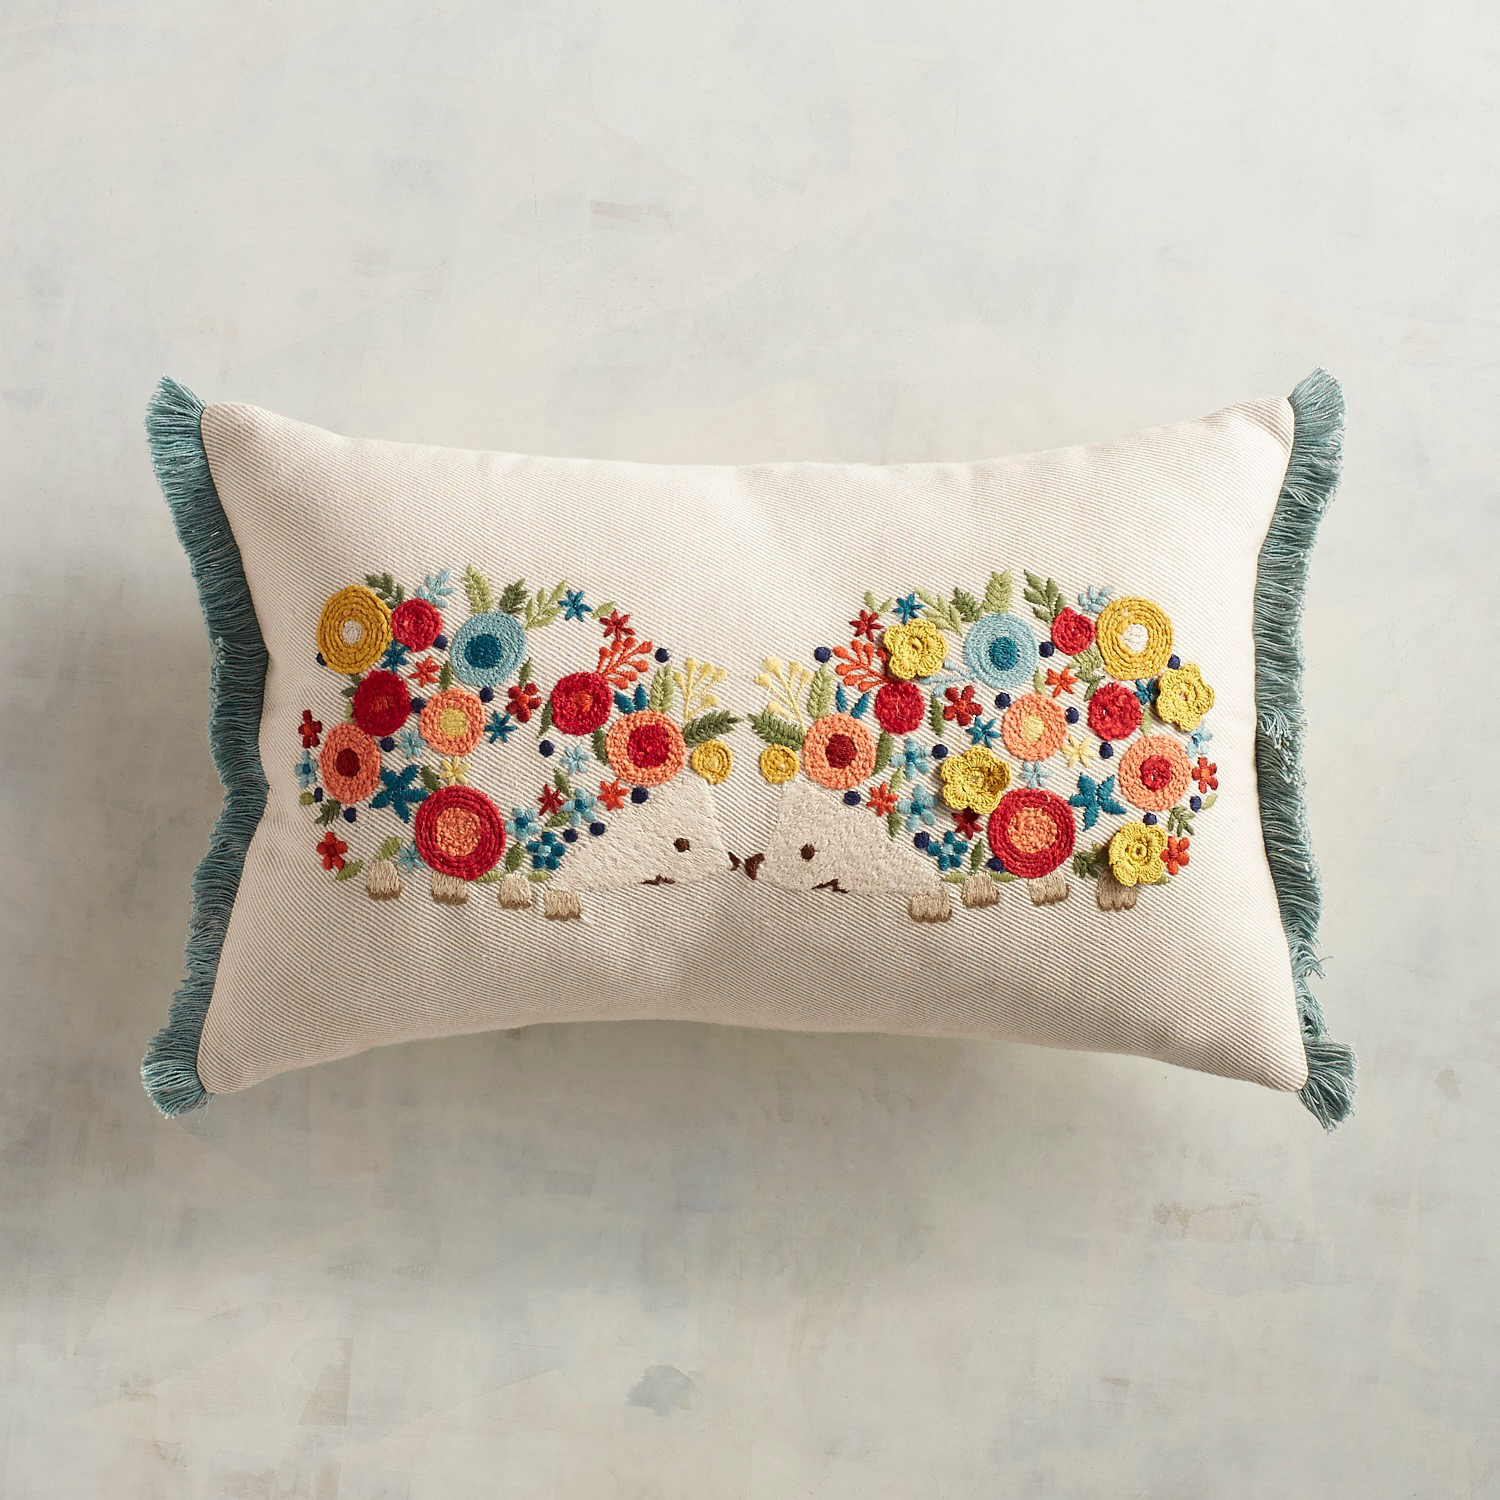 Embroidered Floral Hedgehogs Lumbar Pillow